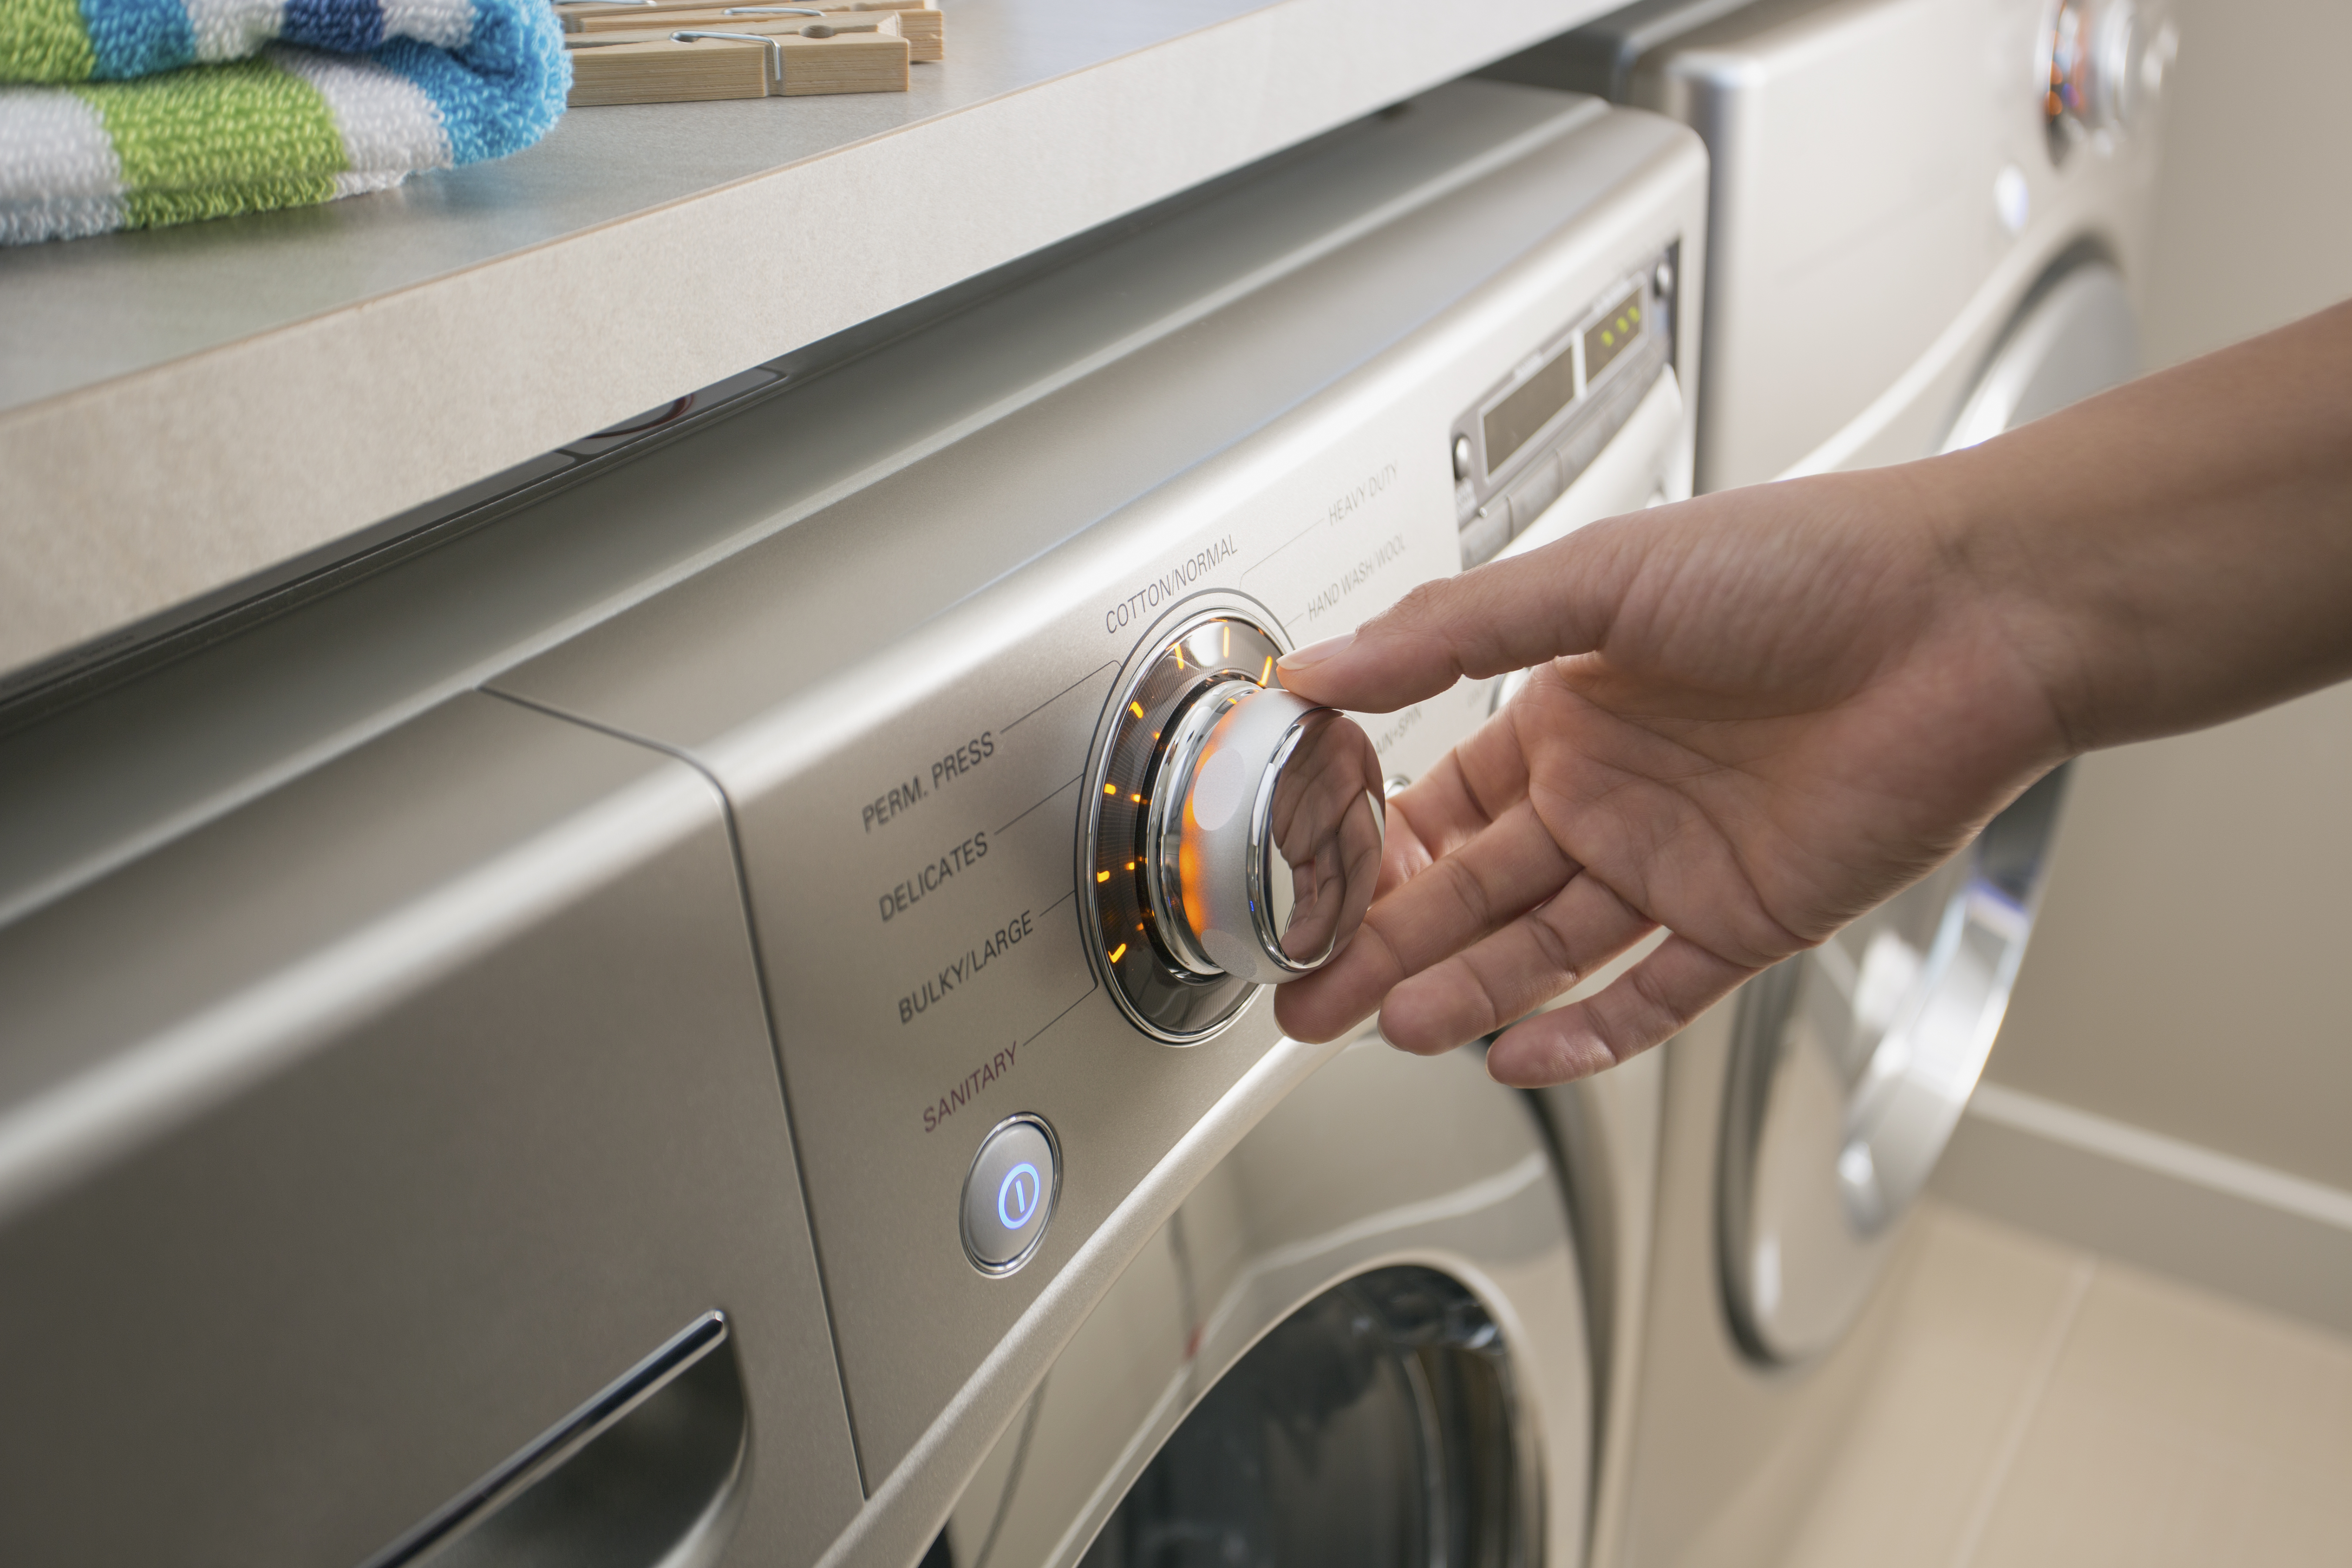 How To Troubleshoot A General Electric Dishwasher That Won T Drain